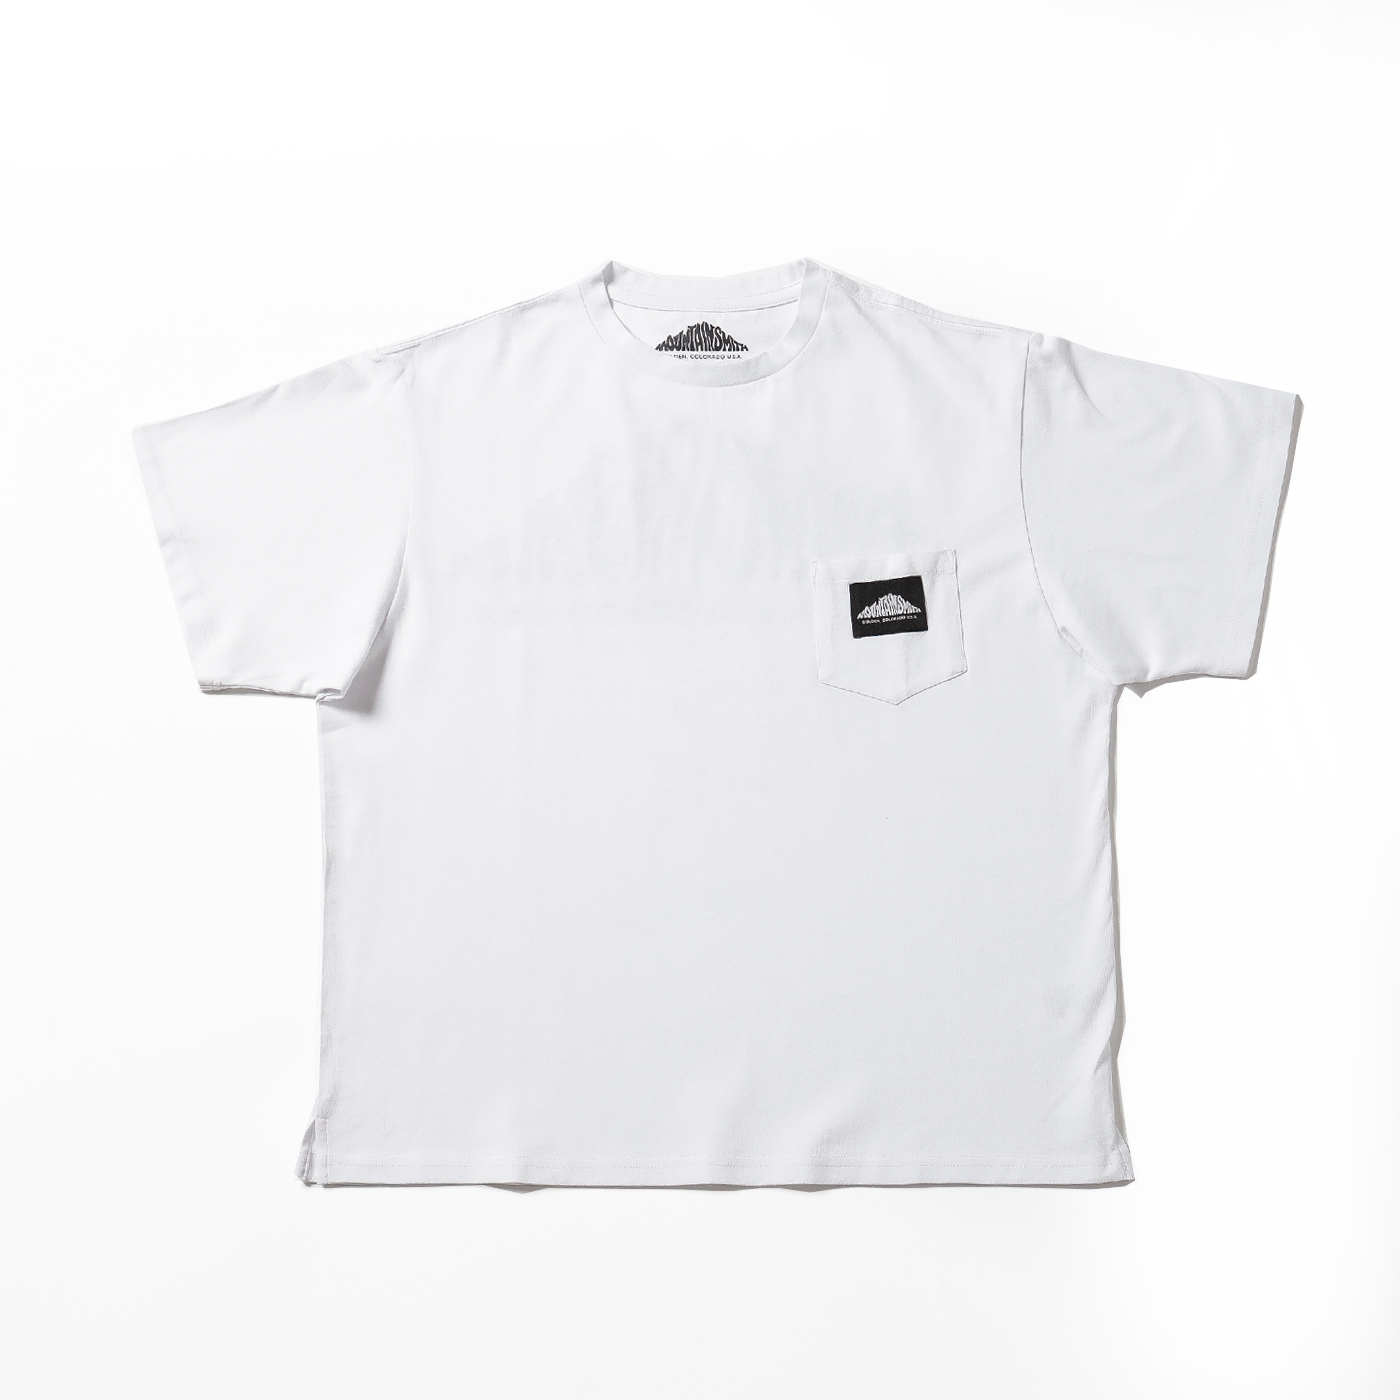 product: MS EMBRO / color: WHITE 1